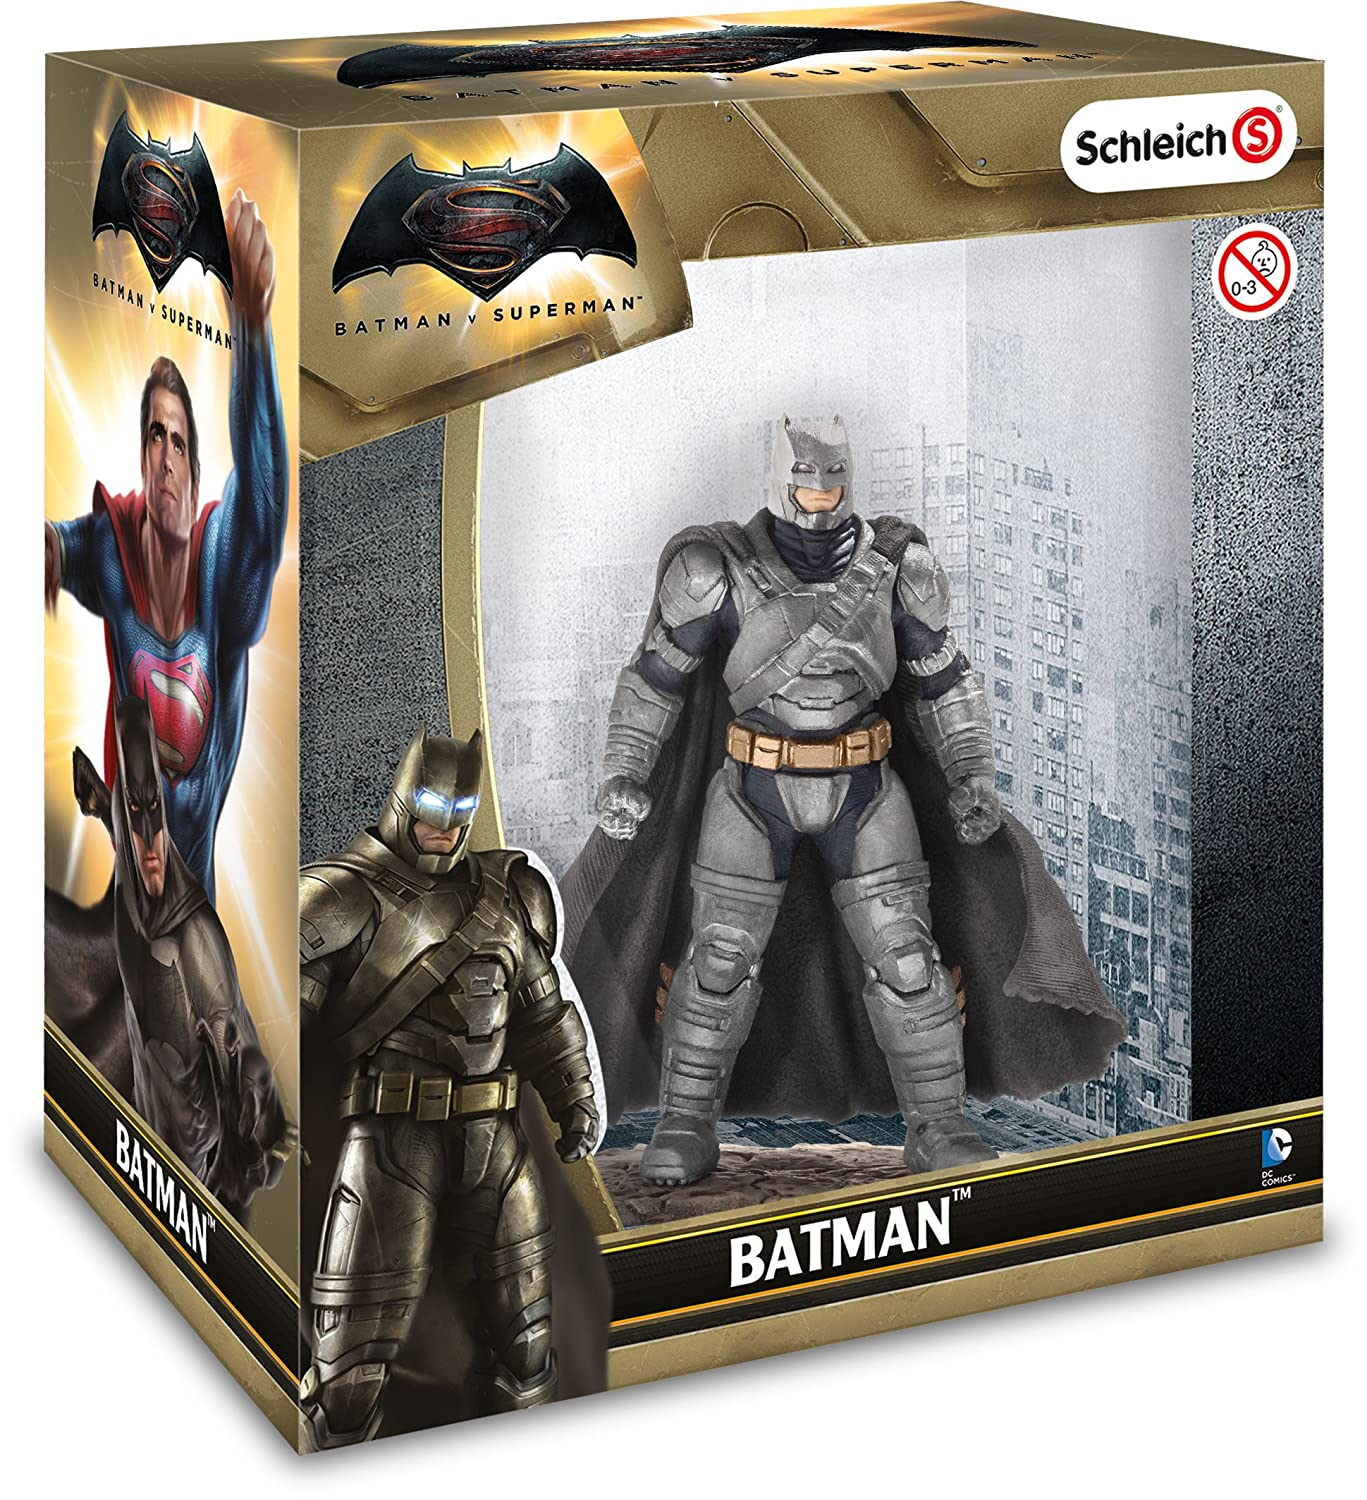 [amazon.de] Schleich Figure Batman, Wonder Woman i Superman za 2,99€